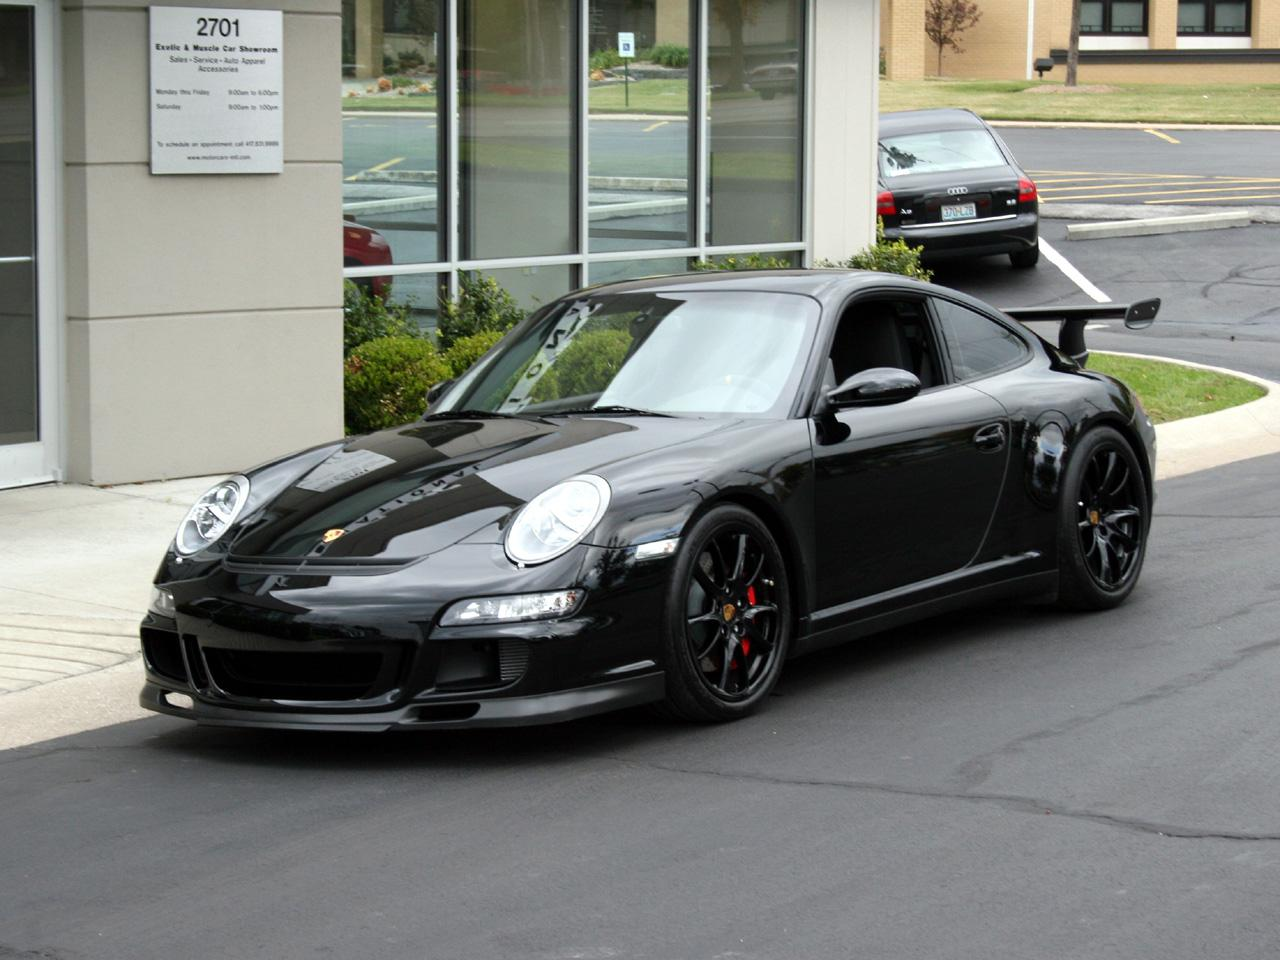 2007 Porsche 911 GT3 RS. Click image for larger slide show